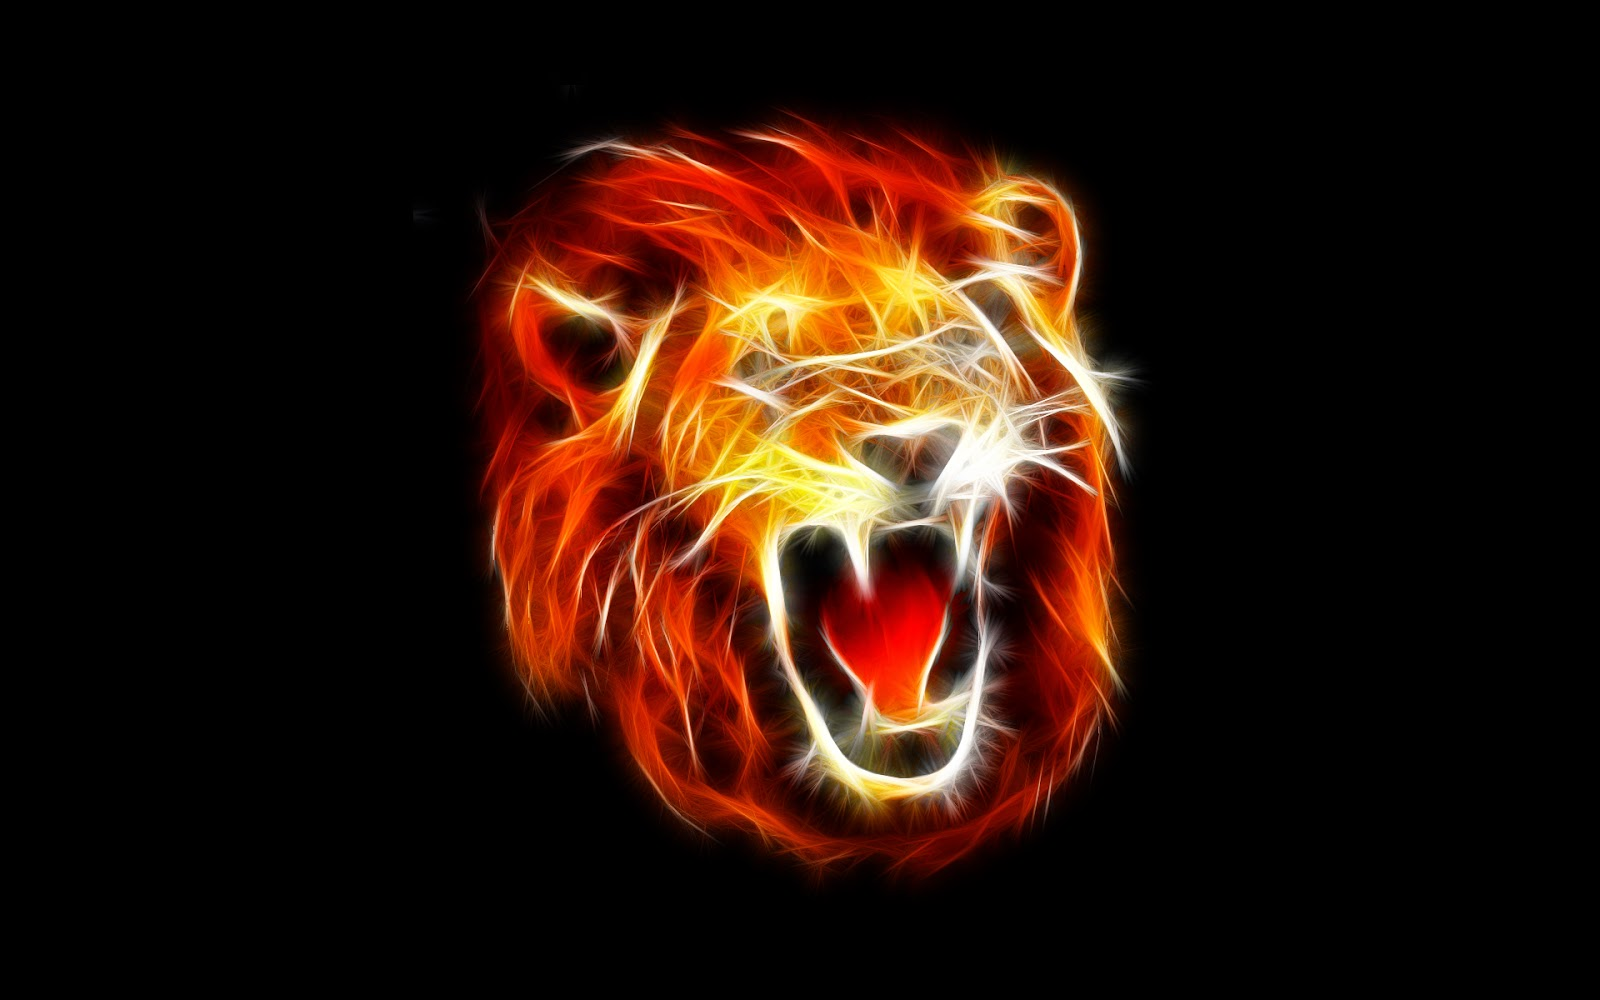 Lions hd wallpapers